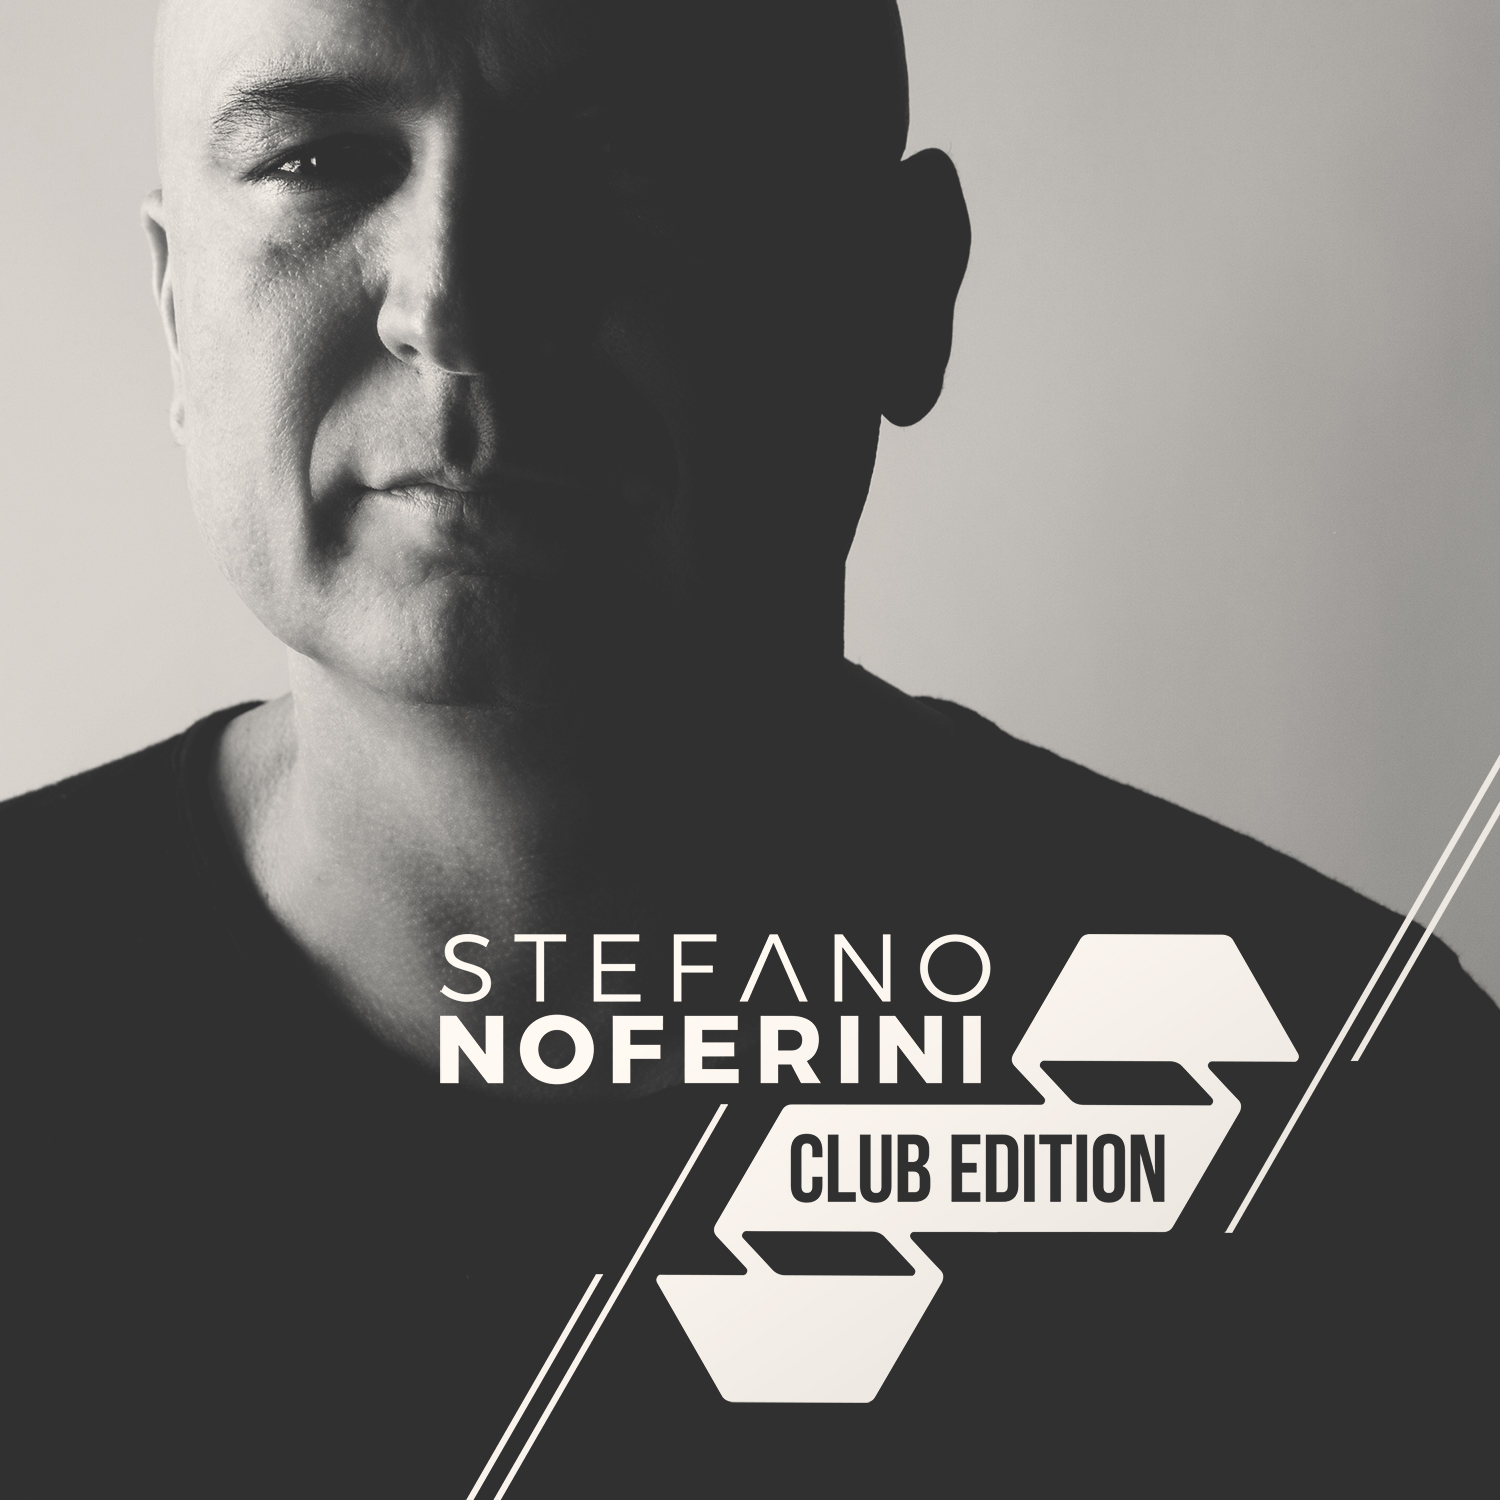 Delta Podcasts - Club Edition By Stefano Noferini (21.09.2017)